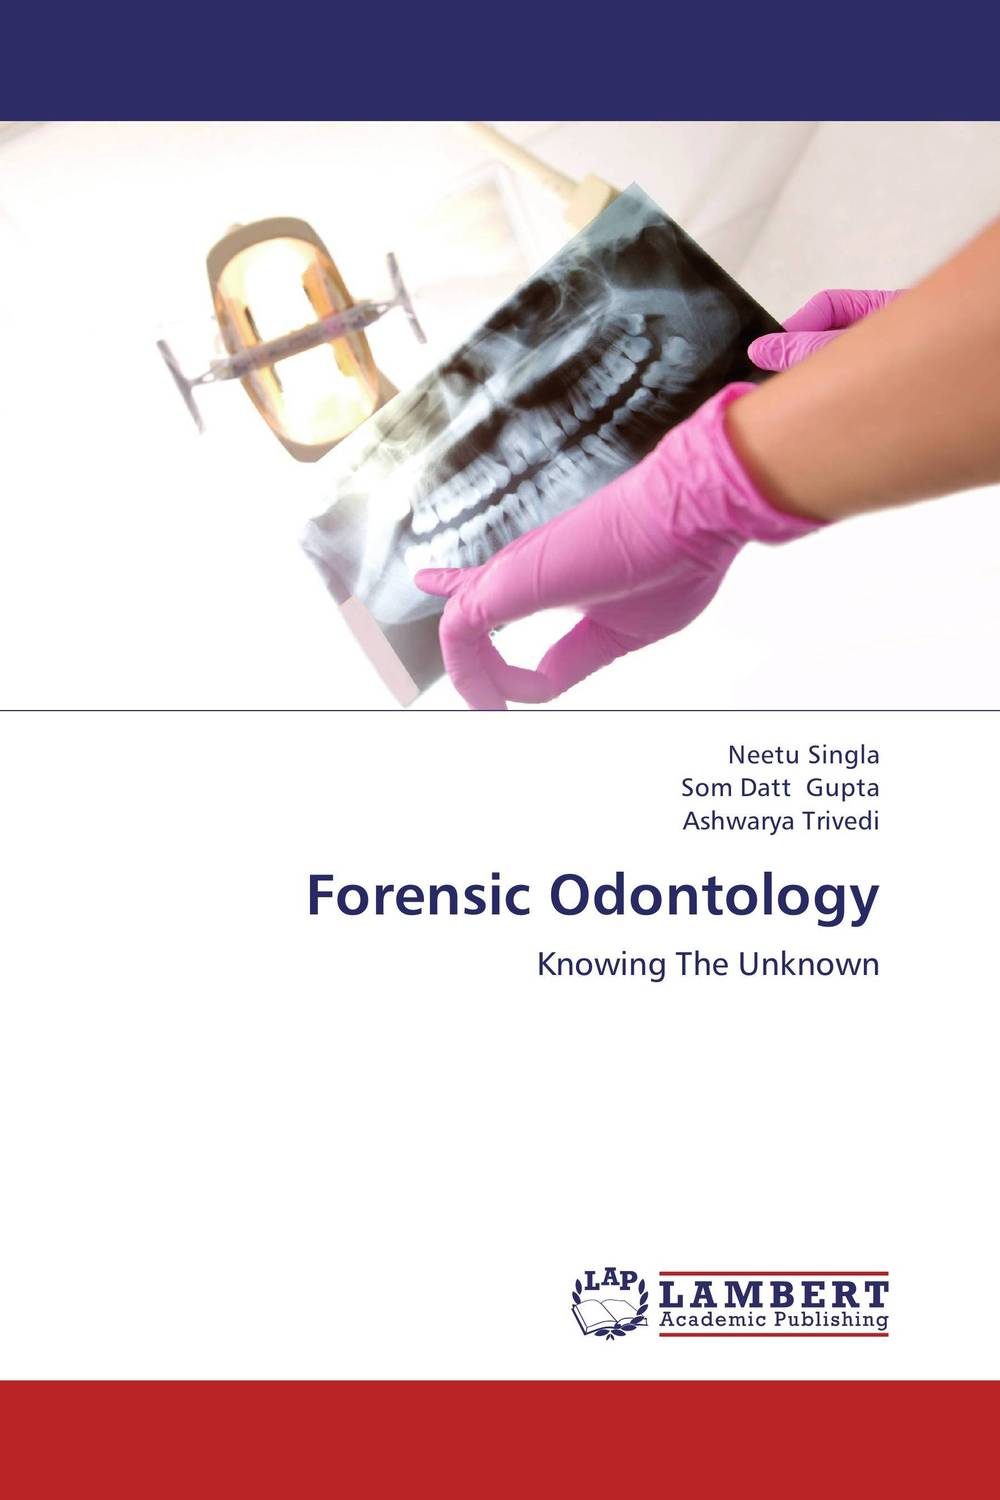 Forensic Odontology electrochemistry of human dental enamel